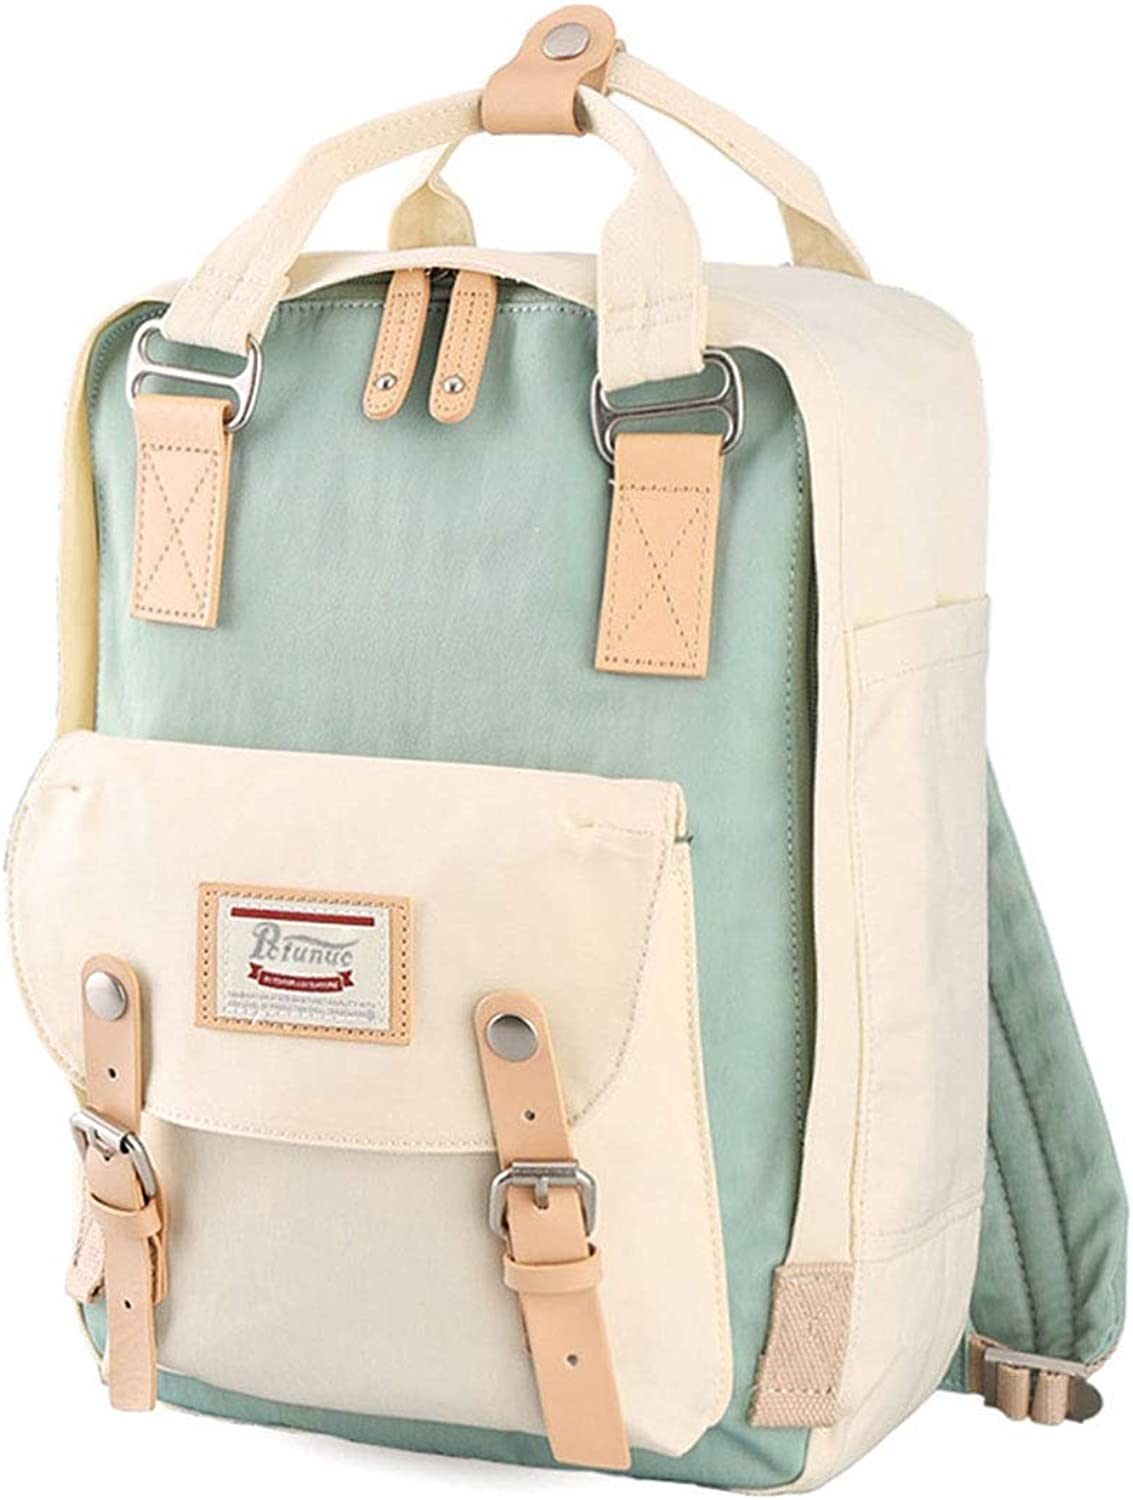 KANEED Laptop Backpack,Water Resistant Fashion Casual Travel Backpackage Laptop Bag Student Bag with Handle, Size  38  28  15cm(Ice blueee+Ivory) Trekking Rucksacks (color   color1)